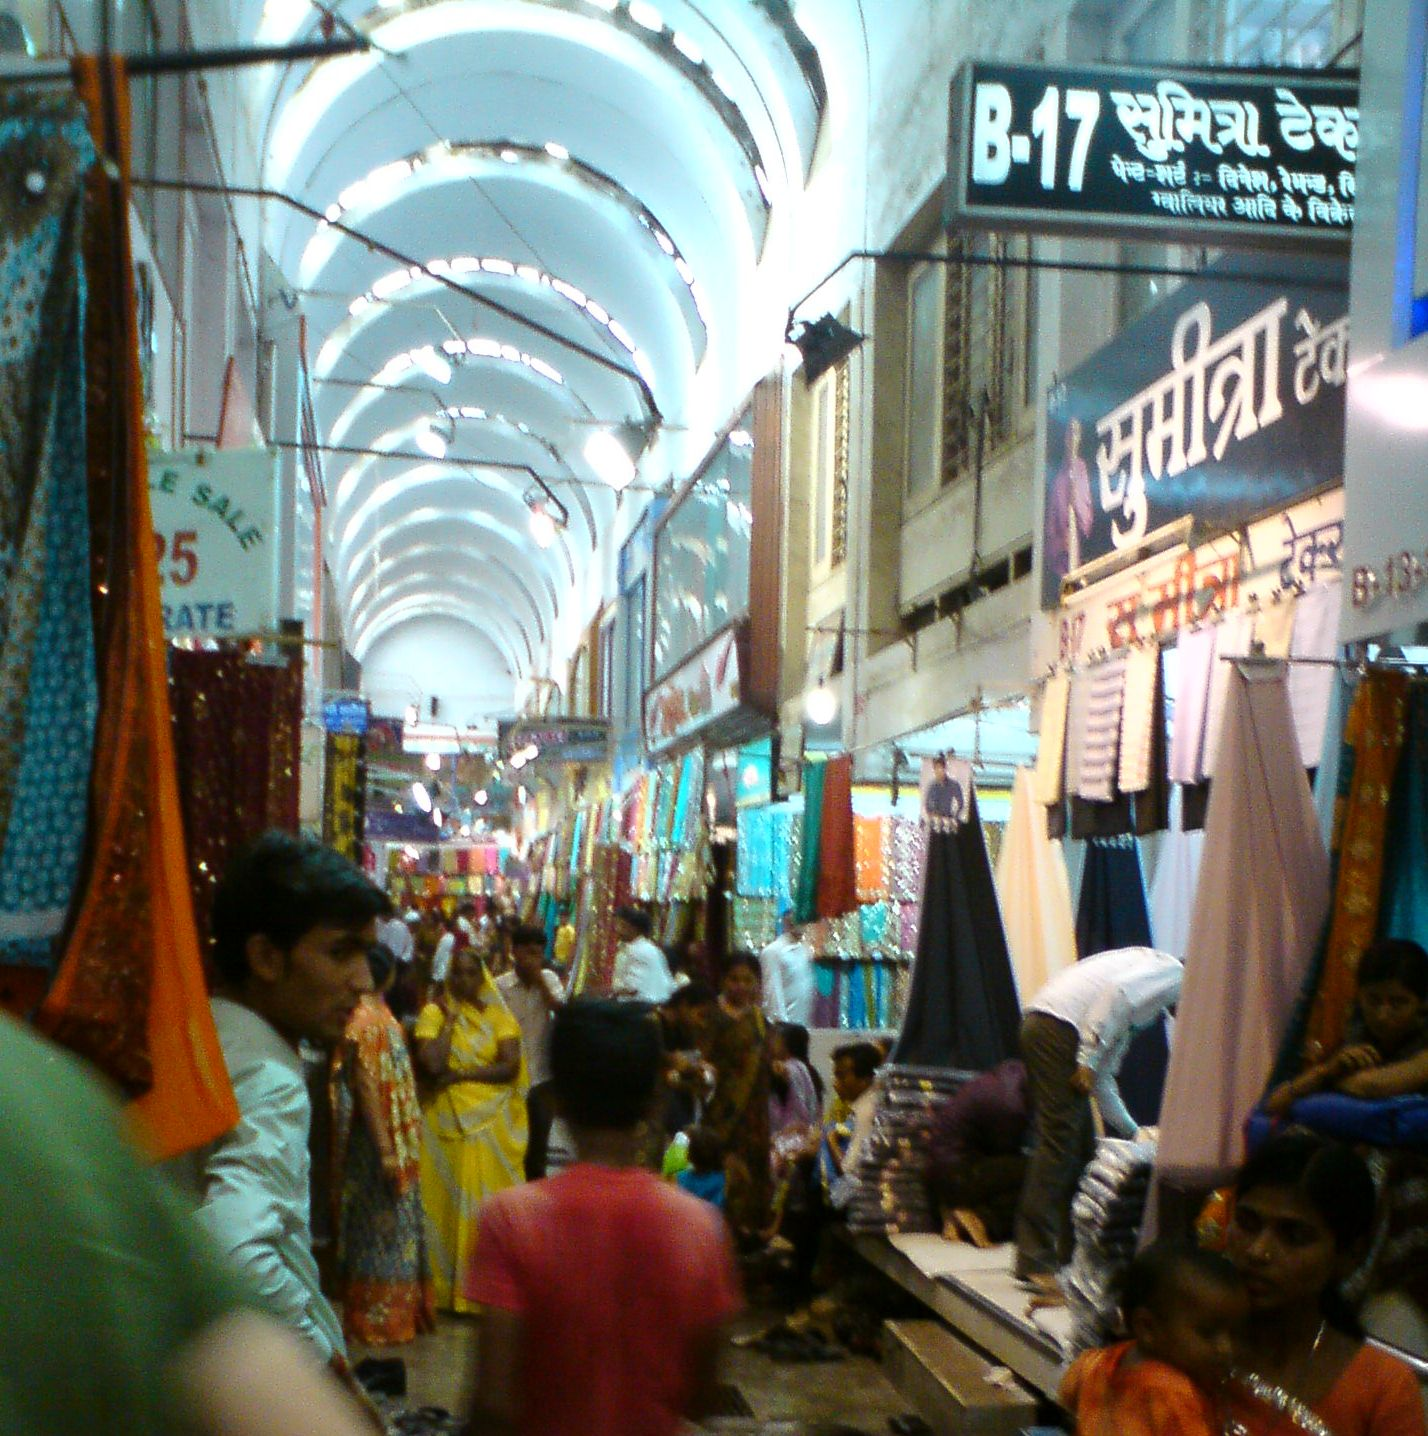 Many of the textile markets